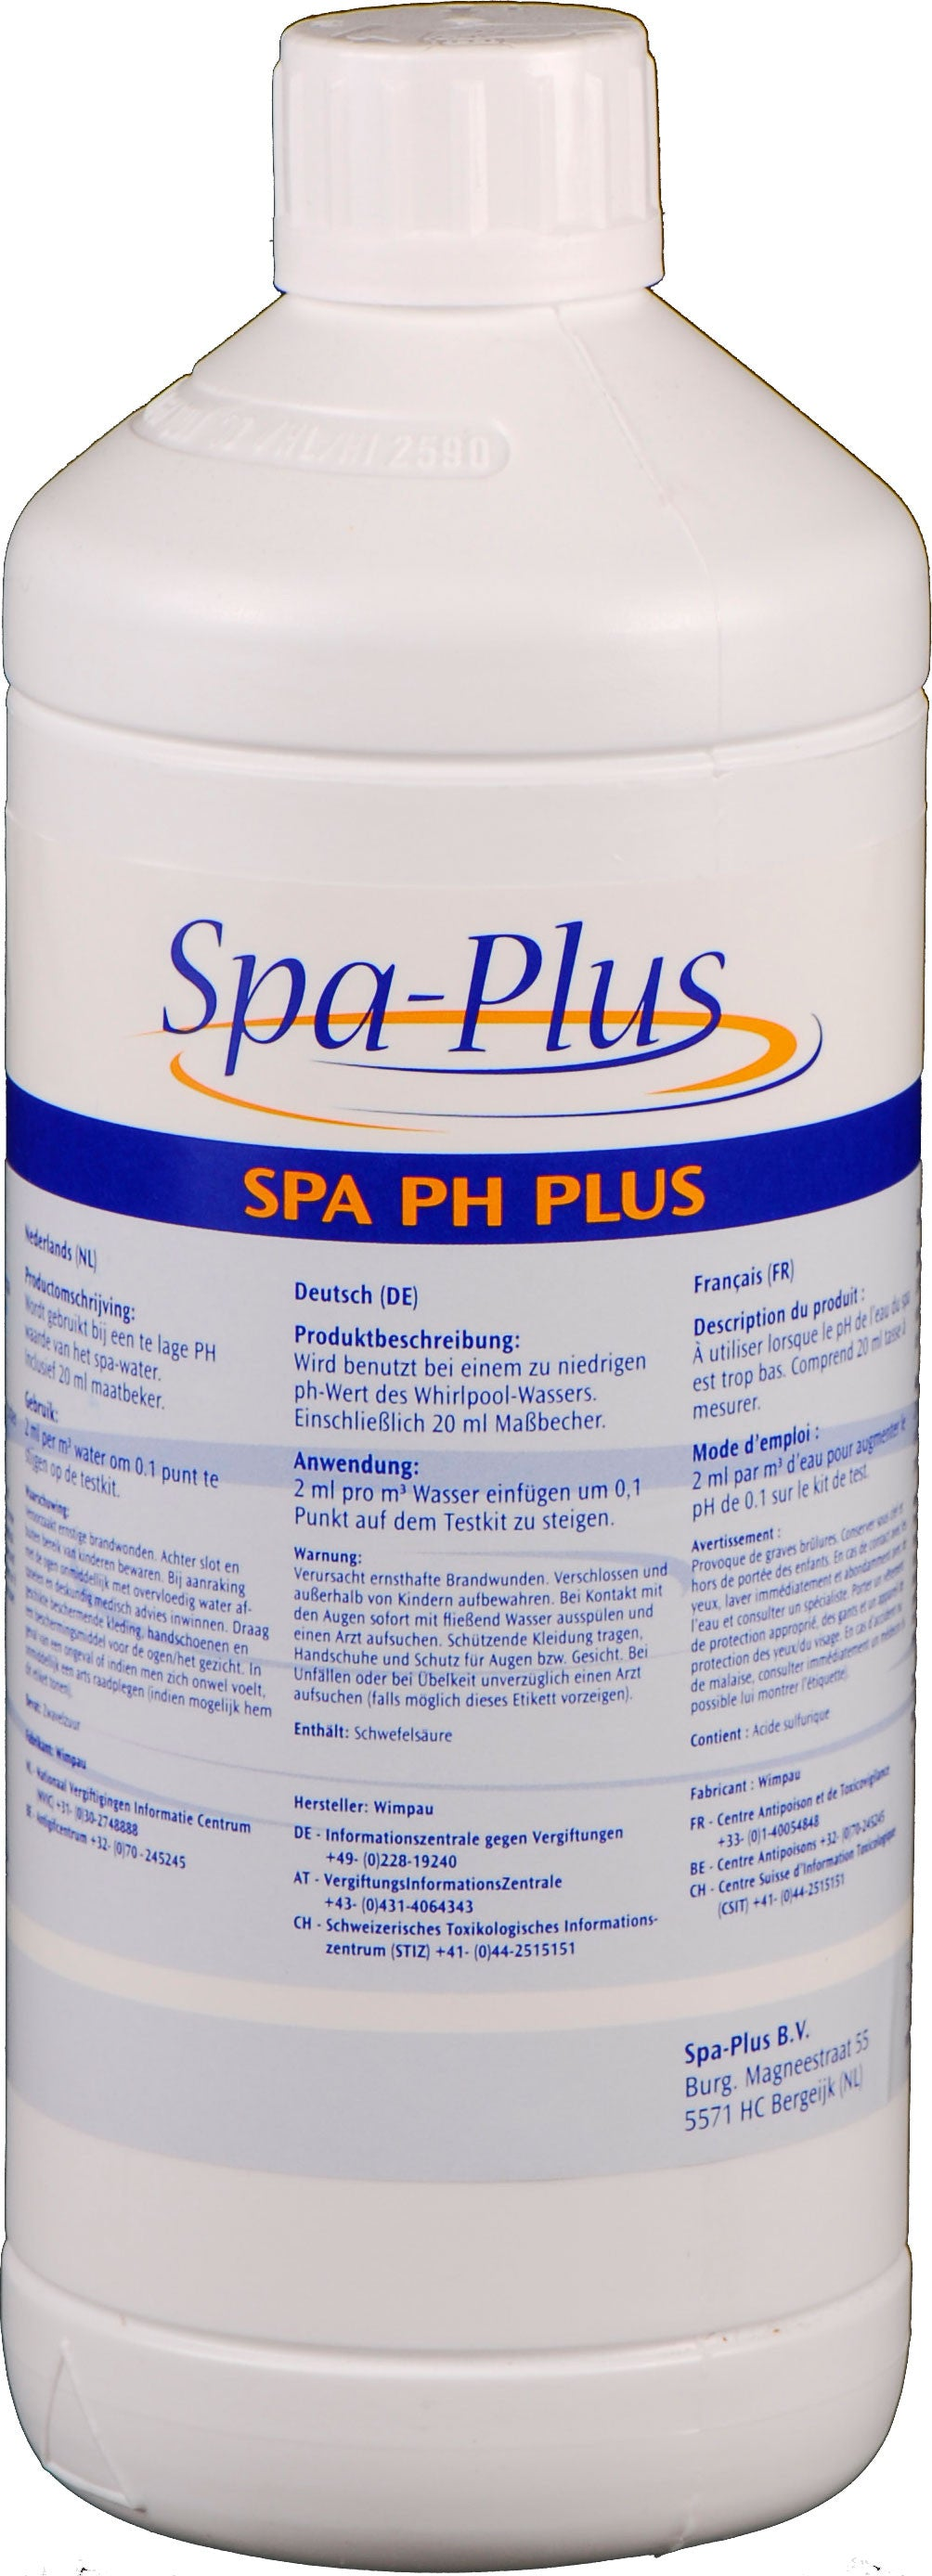 Spa pH Plus - Jacuzzi-producten.nl